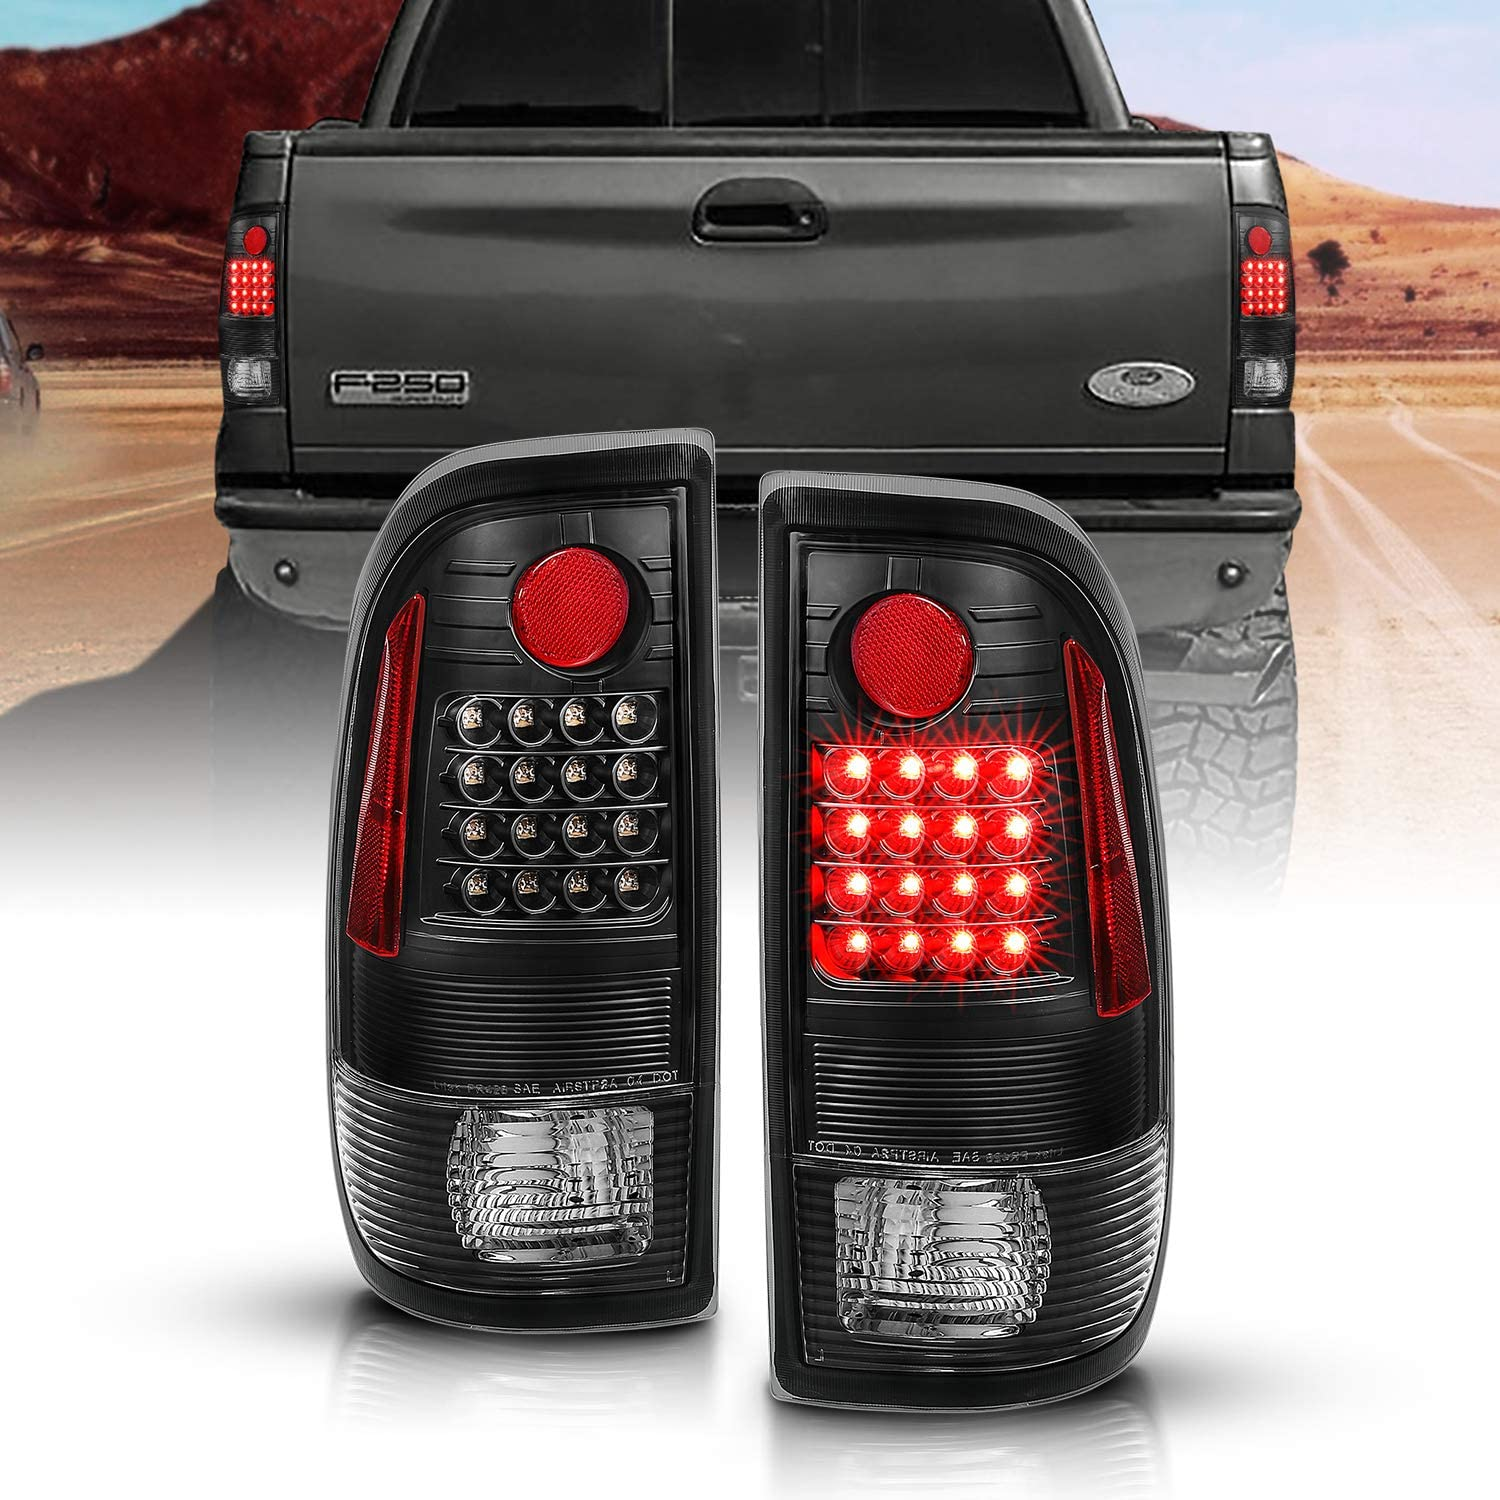 1999-2007 Ford F-250 F-350 Super Duty Pickup Truck AUTOSAVER88 Taillights Compatible with 1997-2003 Ford F150 Fits Styleside Models ONLY Black Smoke Driver and Passenger Side Tail Lights